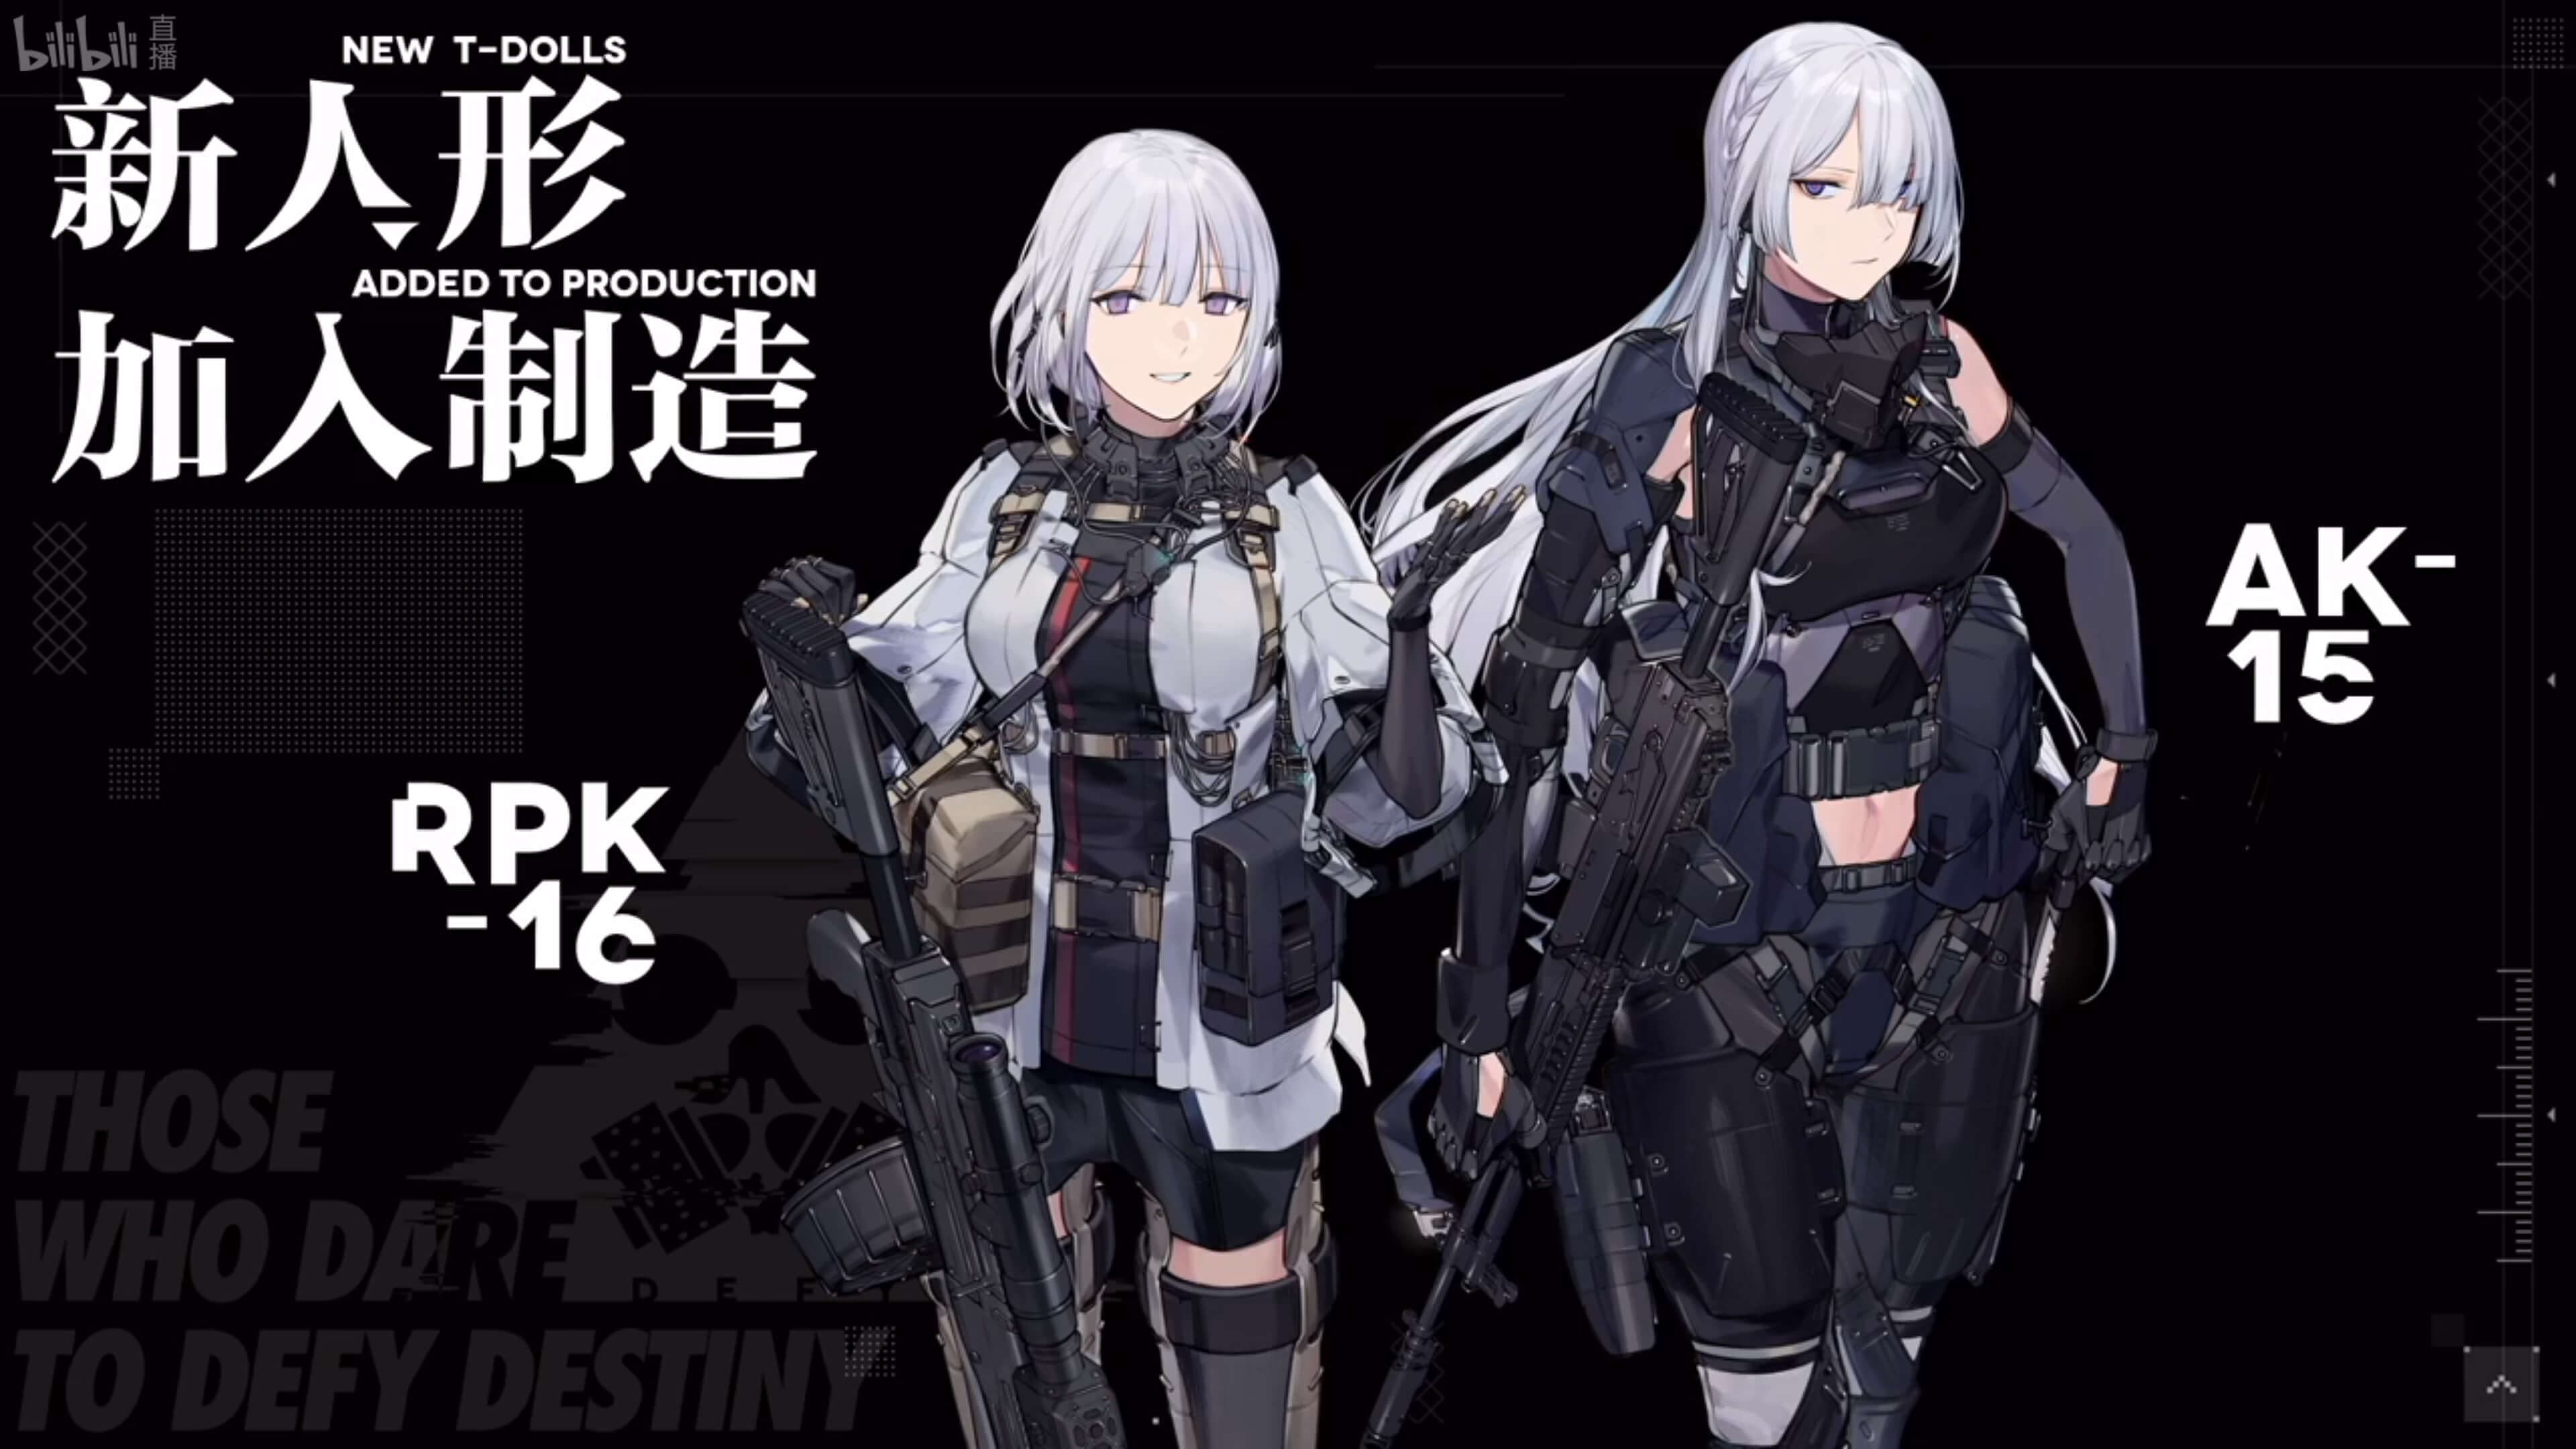 New Polarized Light T-Dolls RPK-16 and AK-15